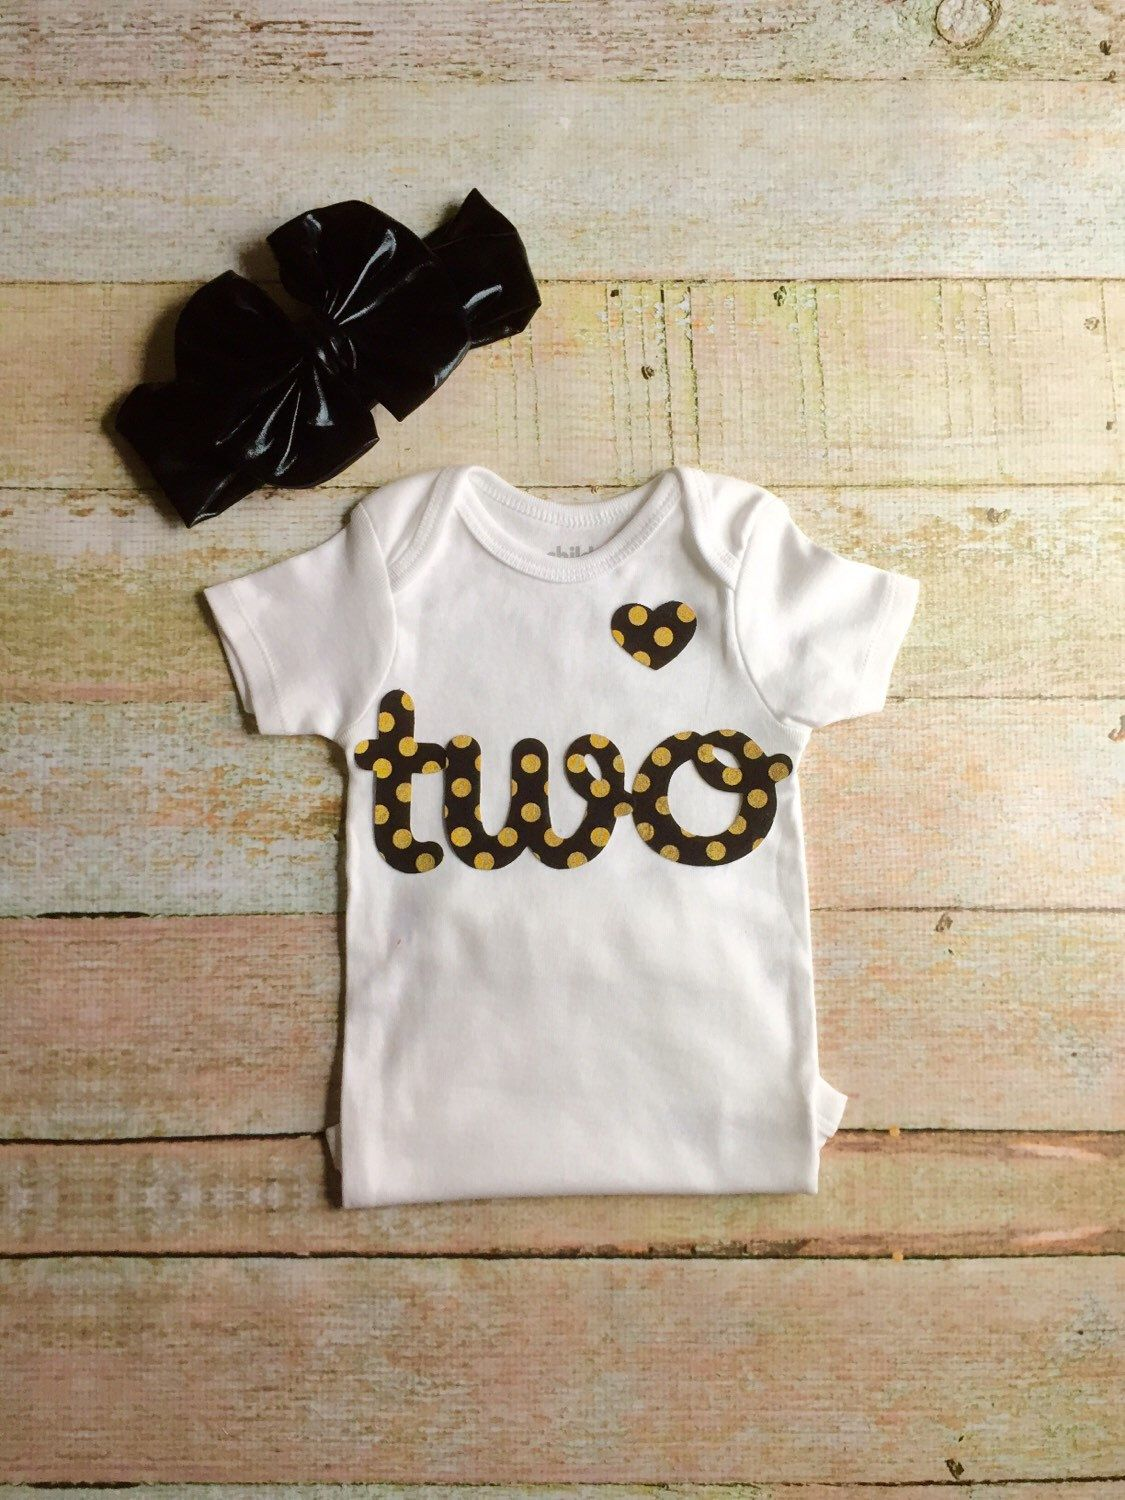 Baby Girl Birthday Onesie - White with Black & Gold Letters with Floppy Bow Headwrap, Baby Second Birthday Onsie, Baby Birthday Shirt by Simpletreeboutique on Etsy https://www.etsy.com/listing/250000918/baby-girl-birthday-onesie-white-with